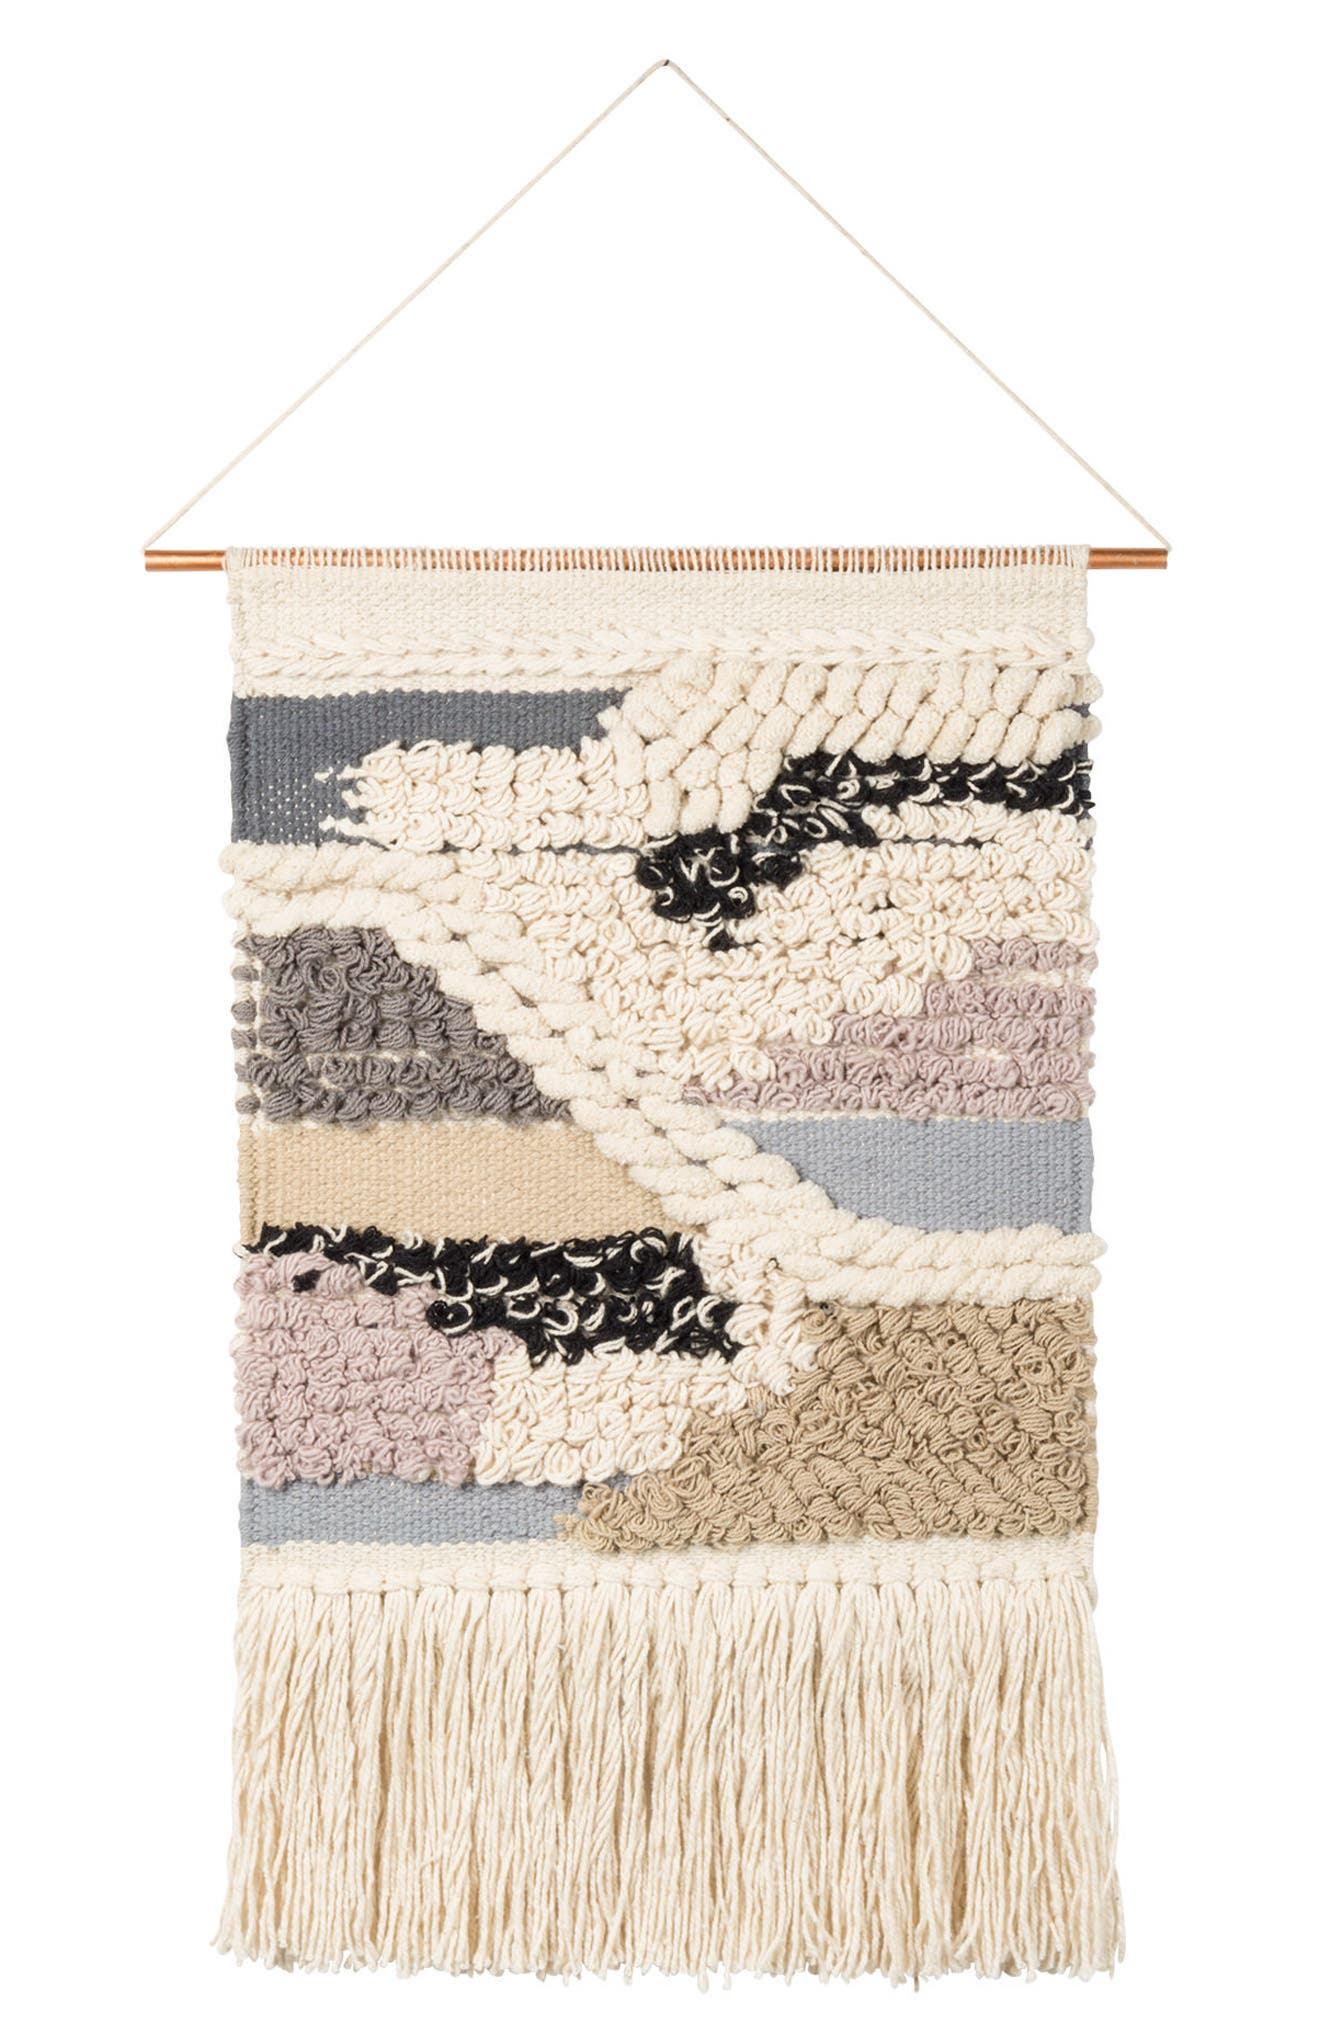 Nomad Woven Wall Hanging,                             Main thumbnail 1, color,                             Ivory